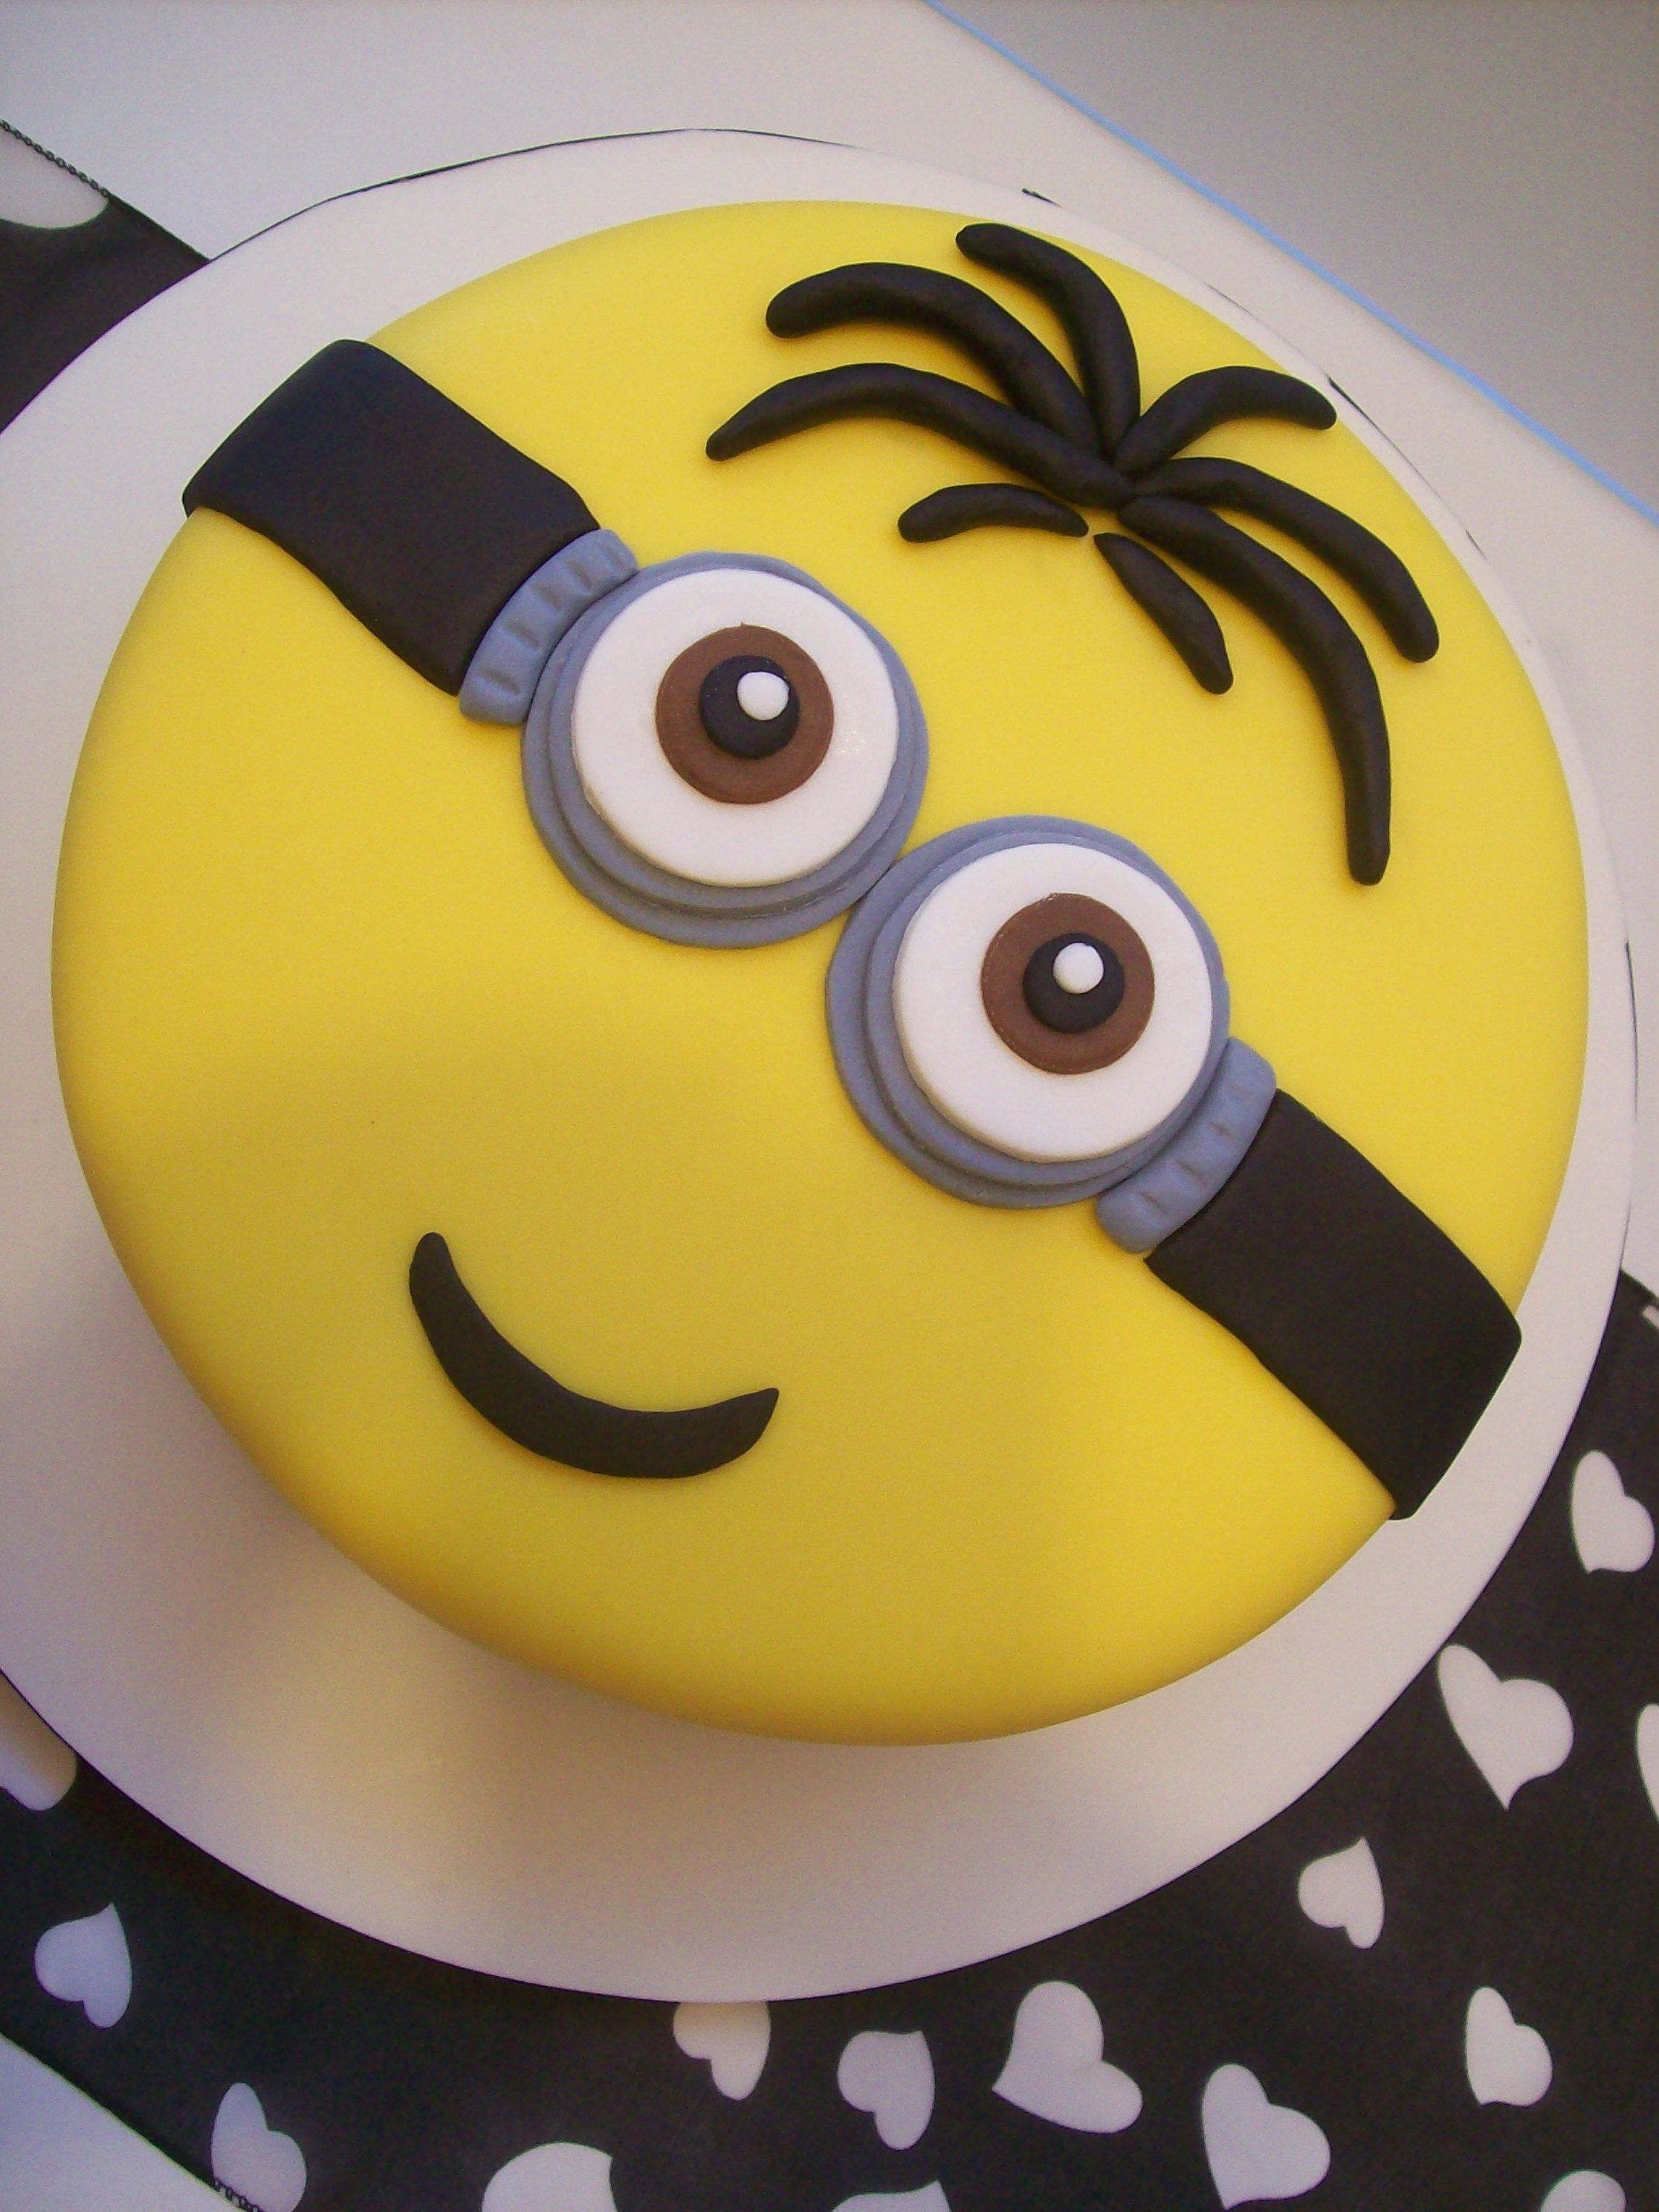 8 Inch Minions Cake Auckland 179 Delivered Only